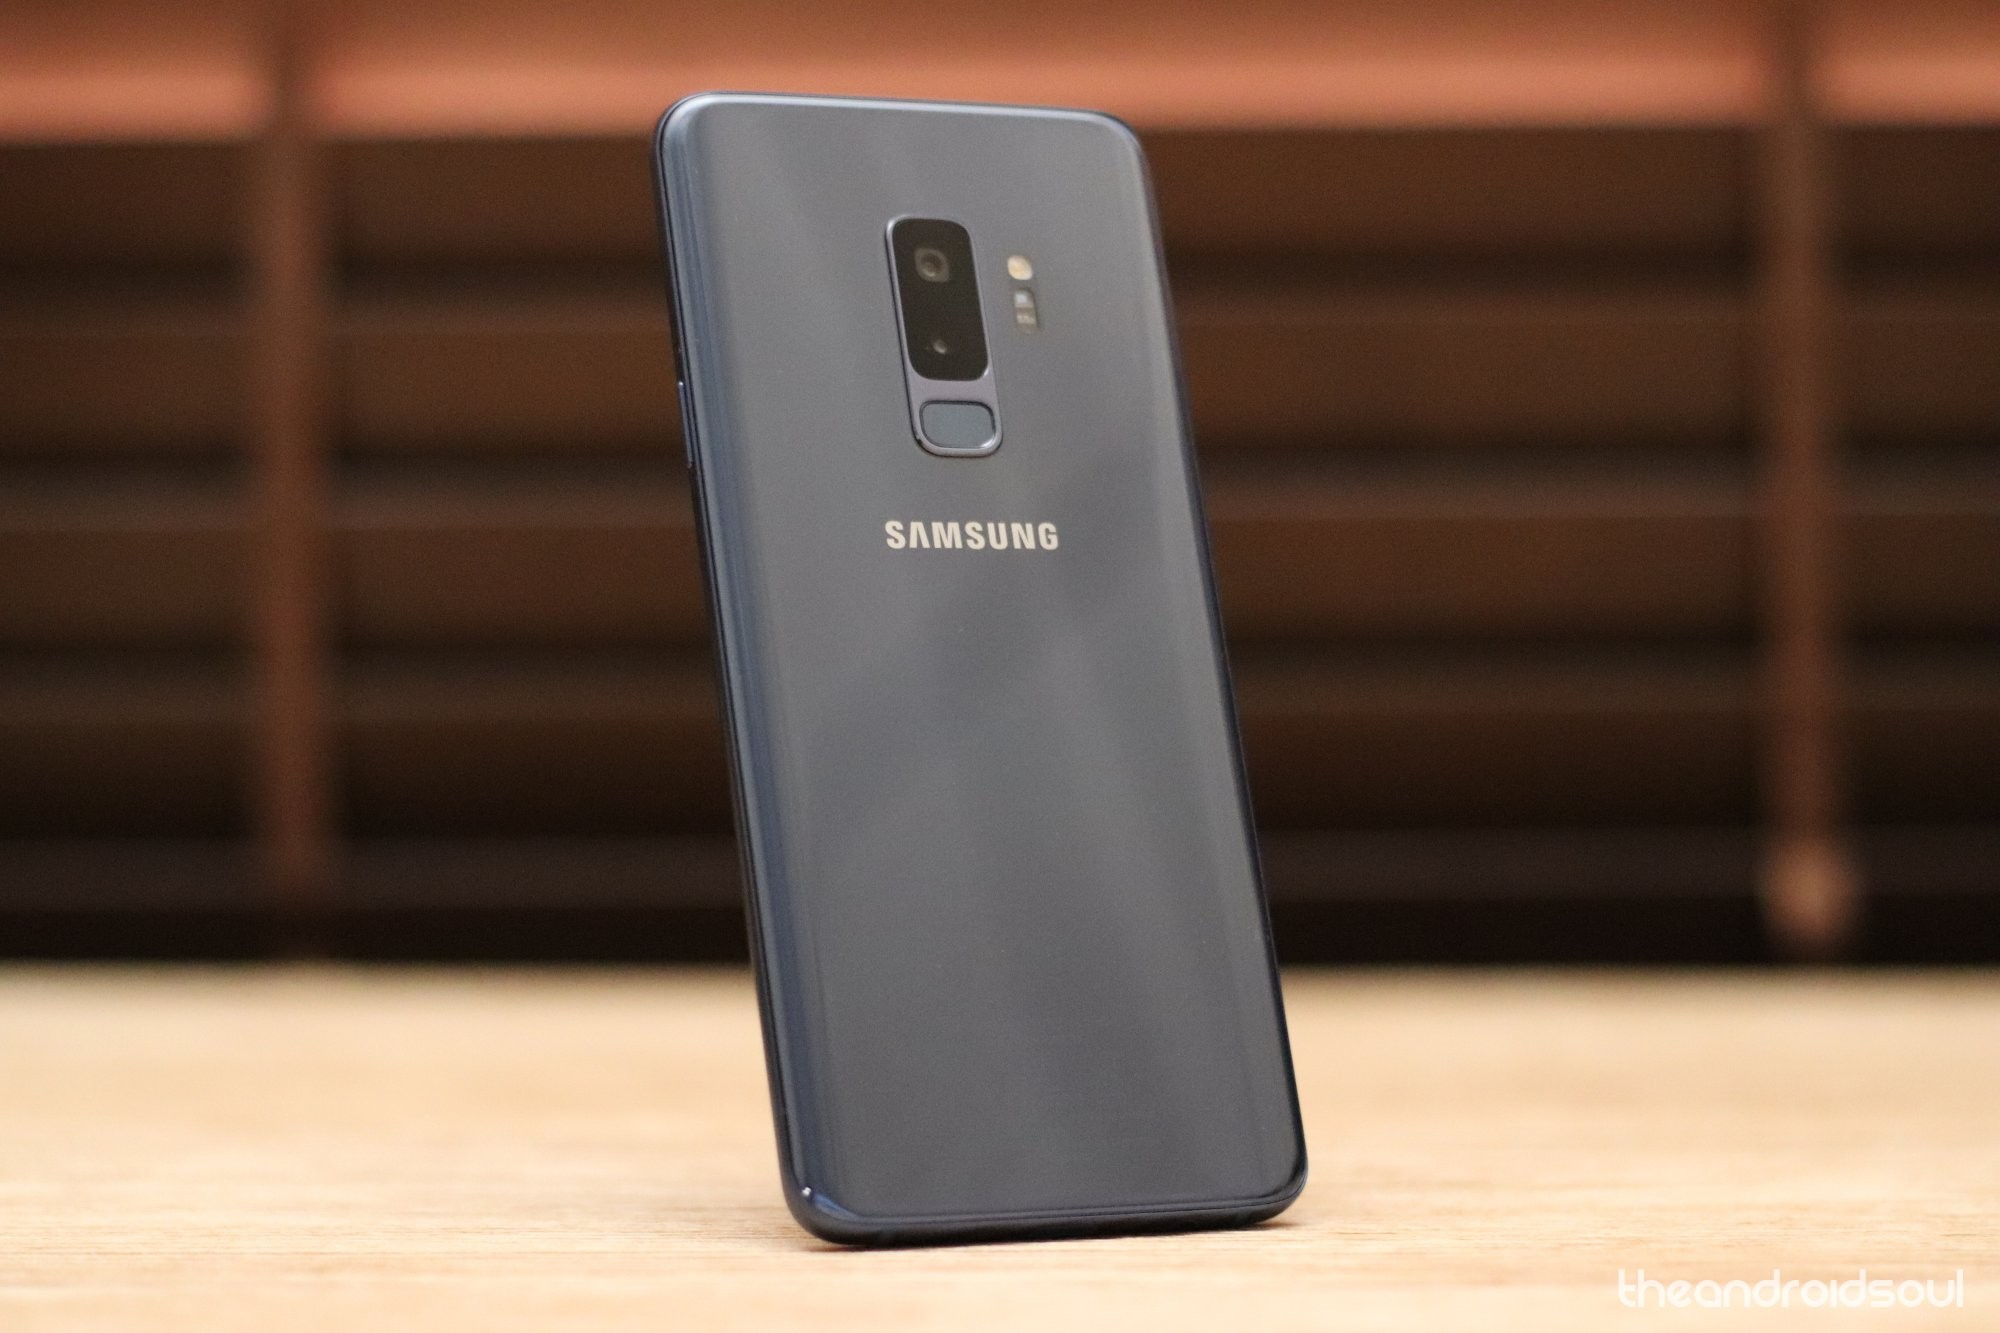 Galaxy S9 Plus smartphone